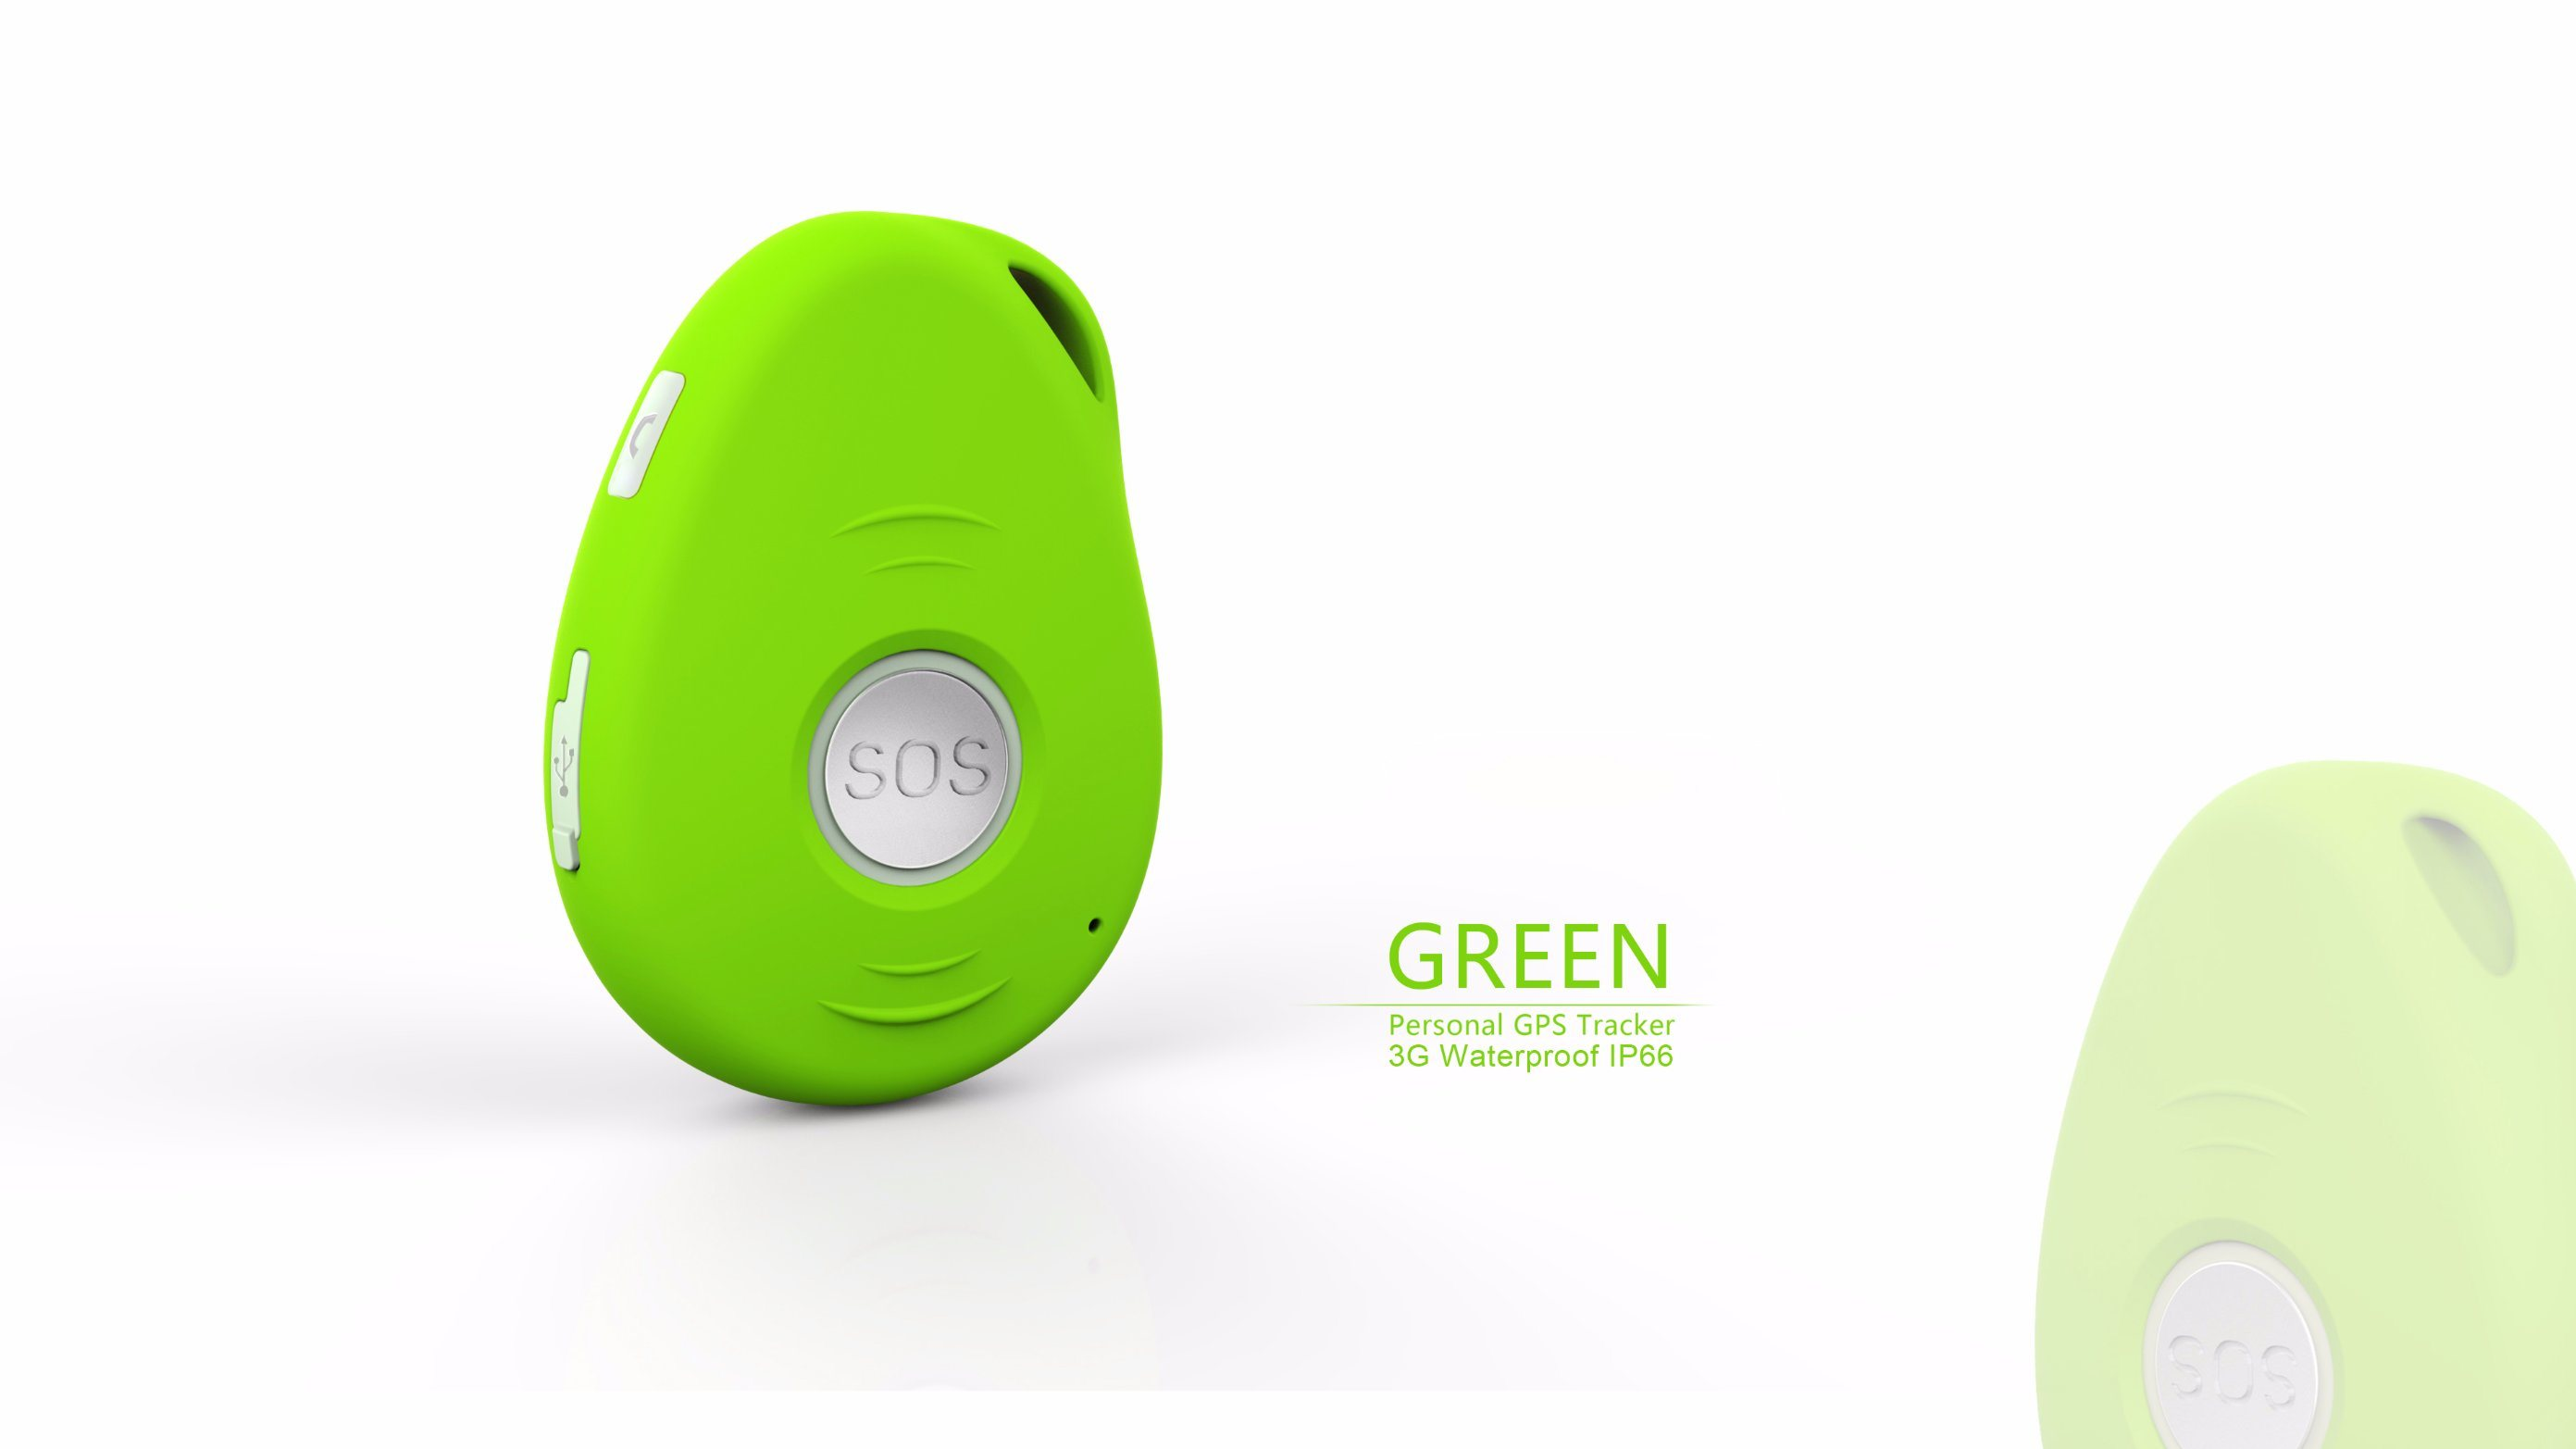 Personal 3G Chip Mini GPS Tracker with GSM/GPRS /GPS Tracking Device for Child/Elderly GPS Locator